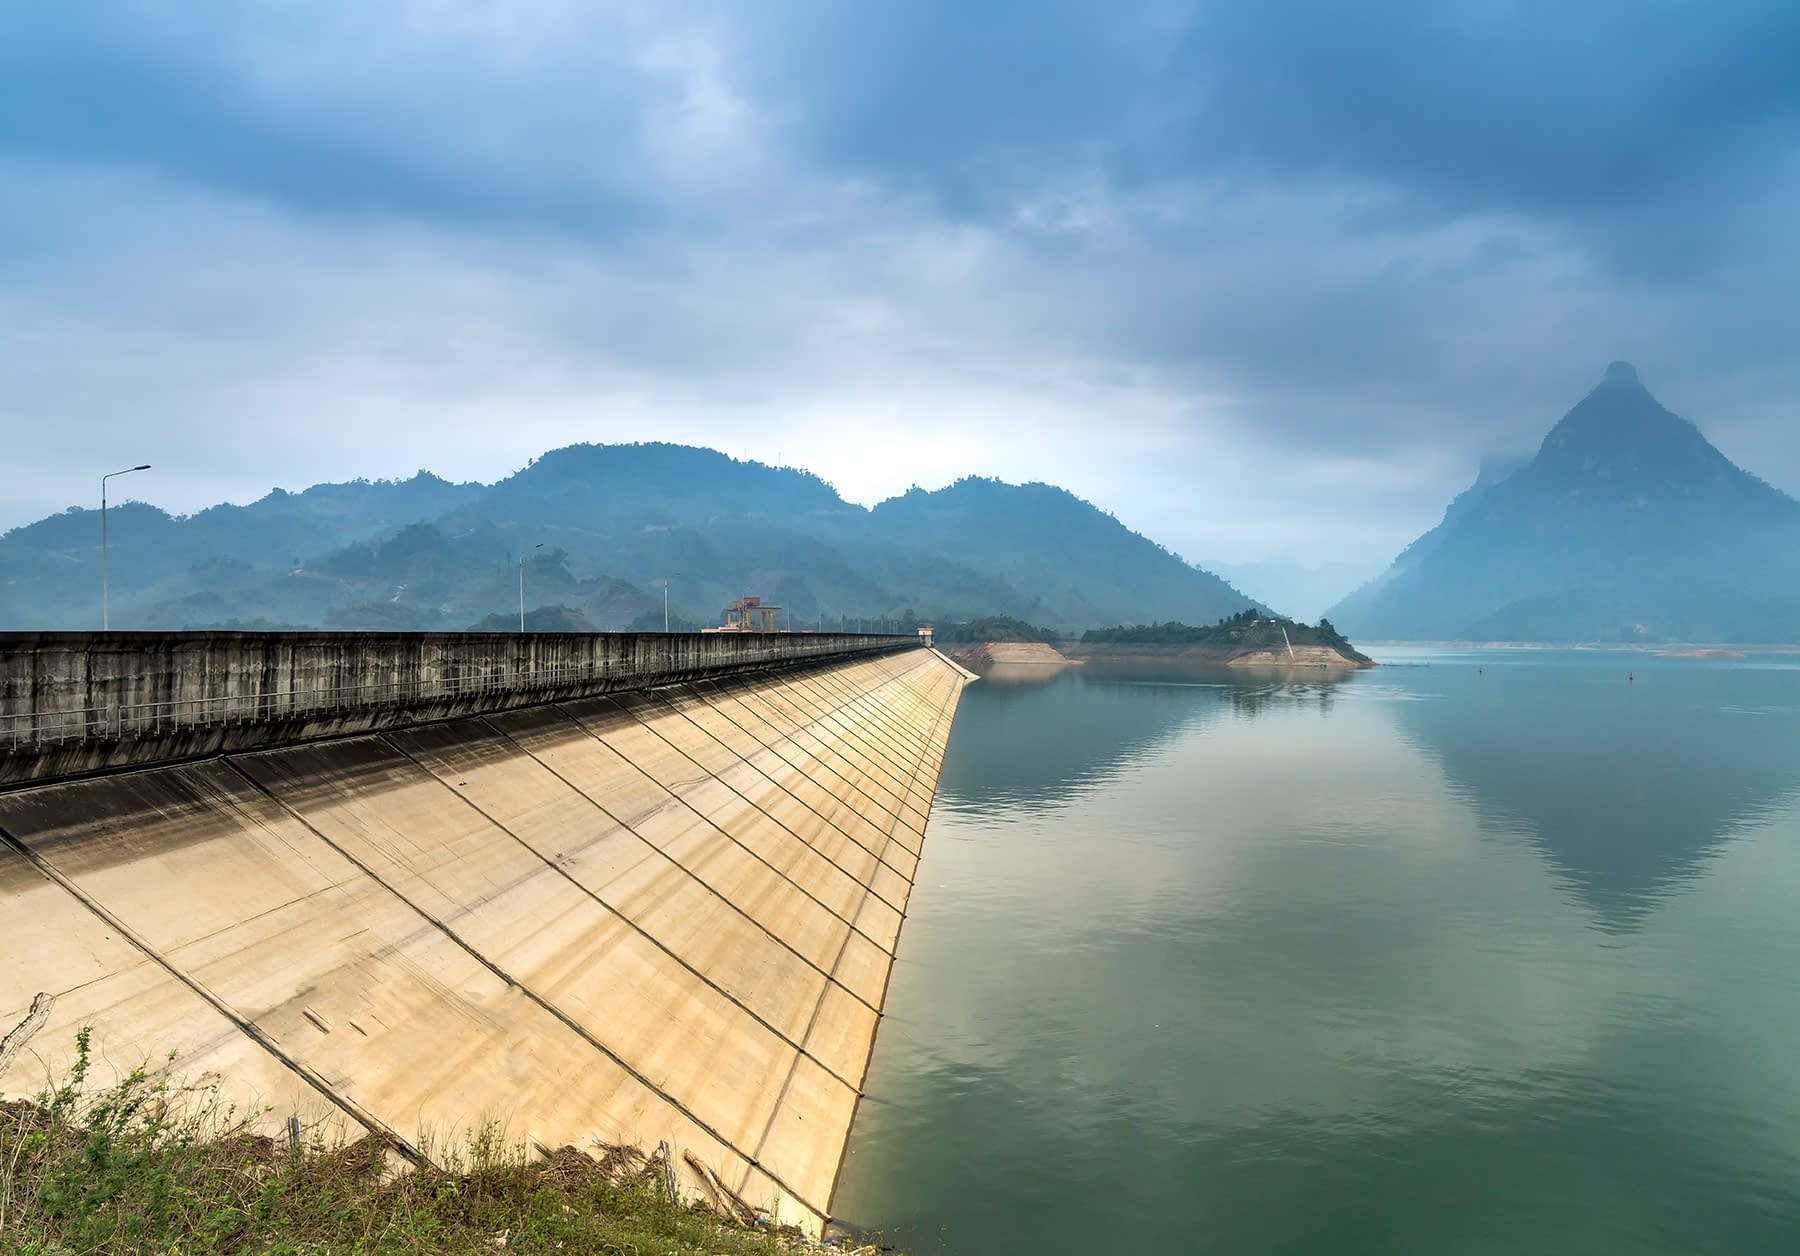 Financing and Carbon Credits for Hydropower Projects in India